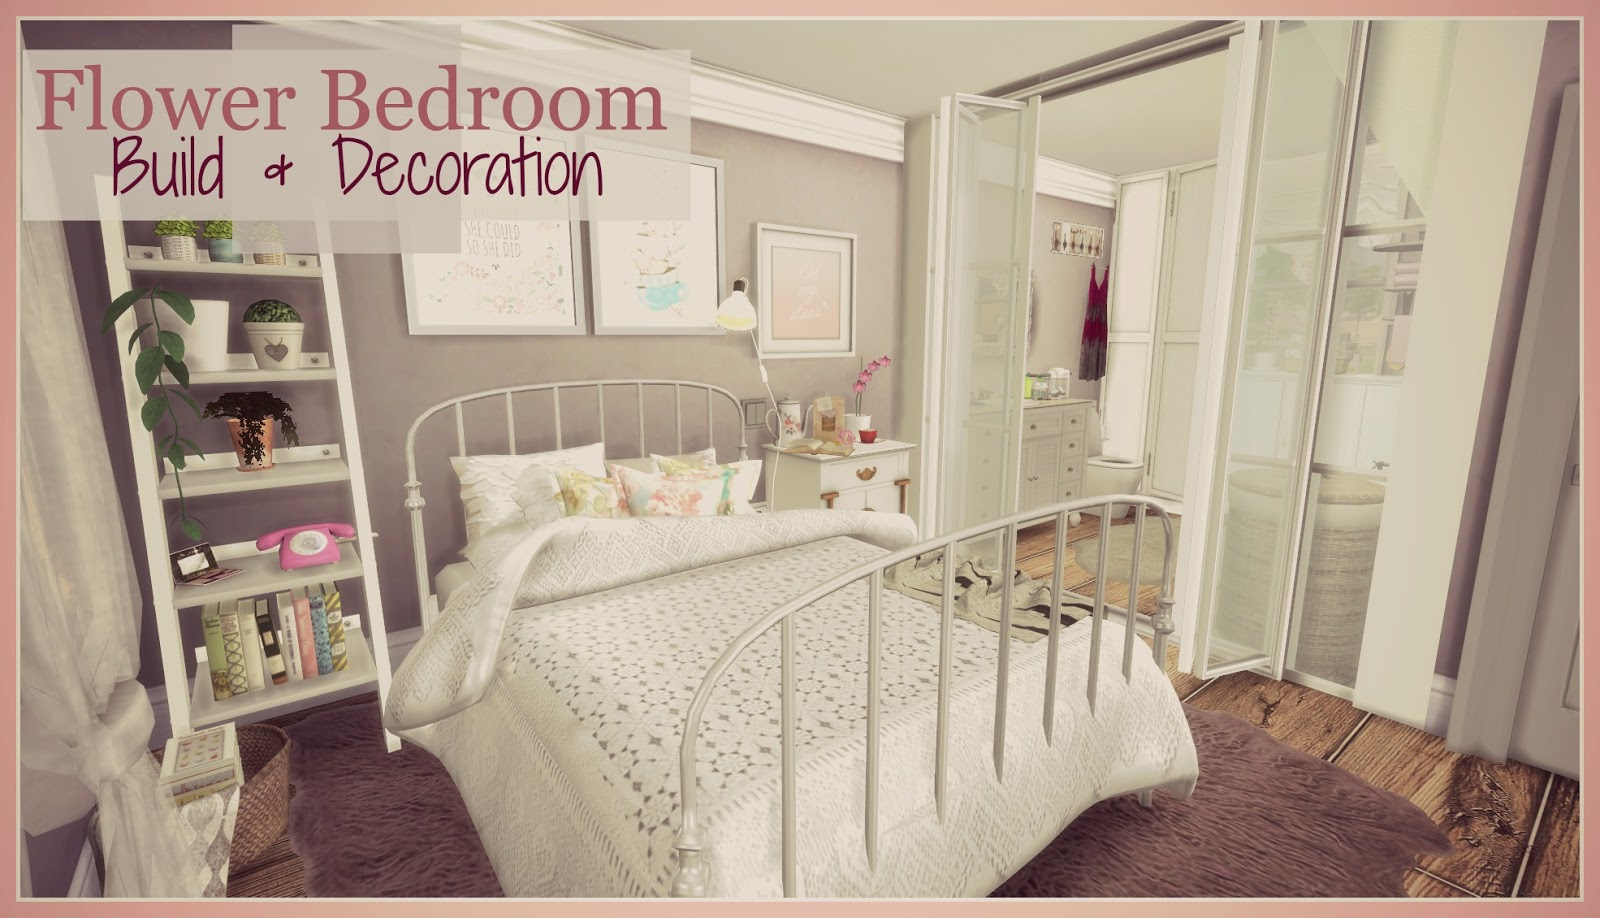 Sims 4 flower bedroom buil decoration dinha for 4 bedroom